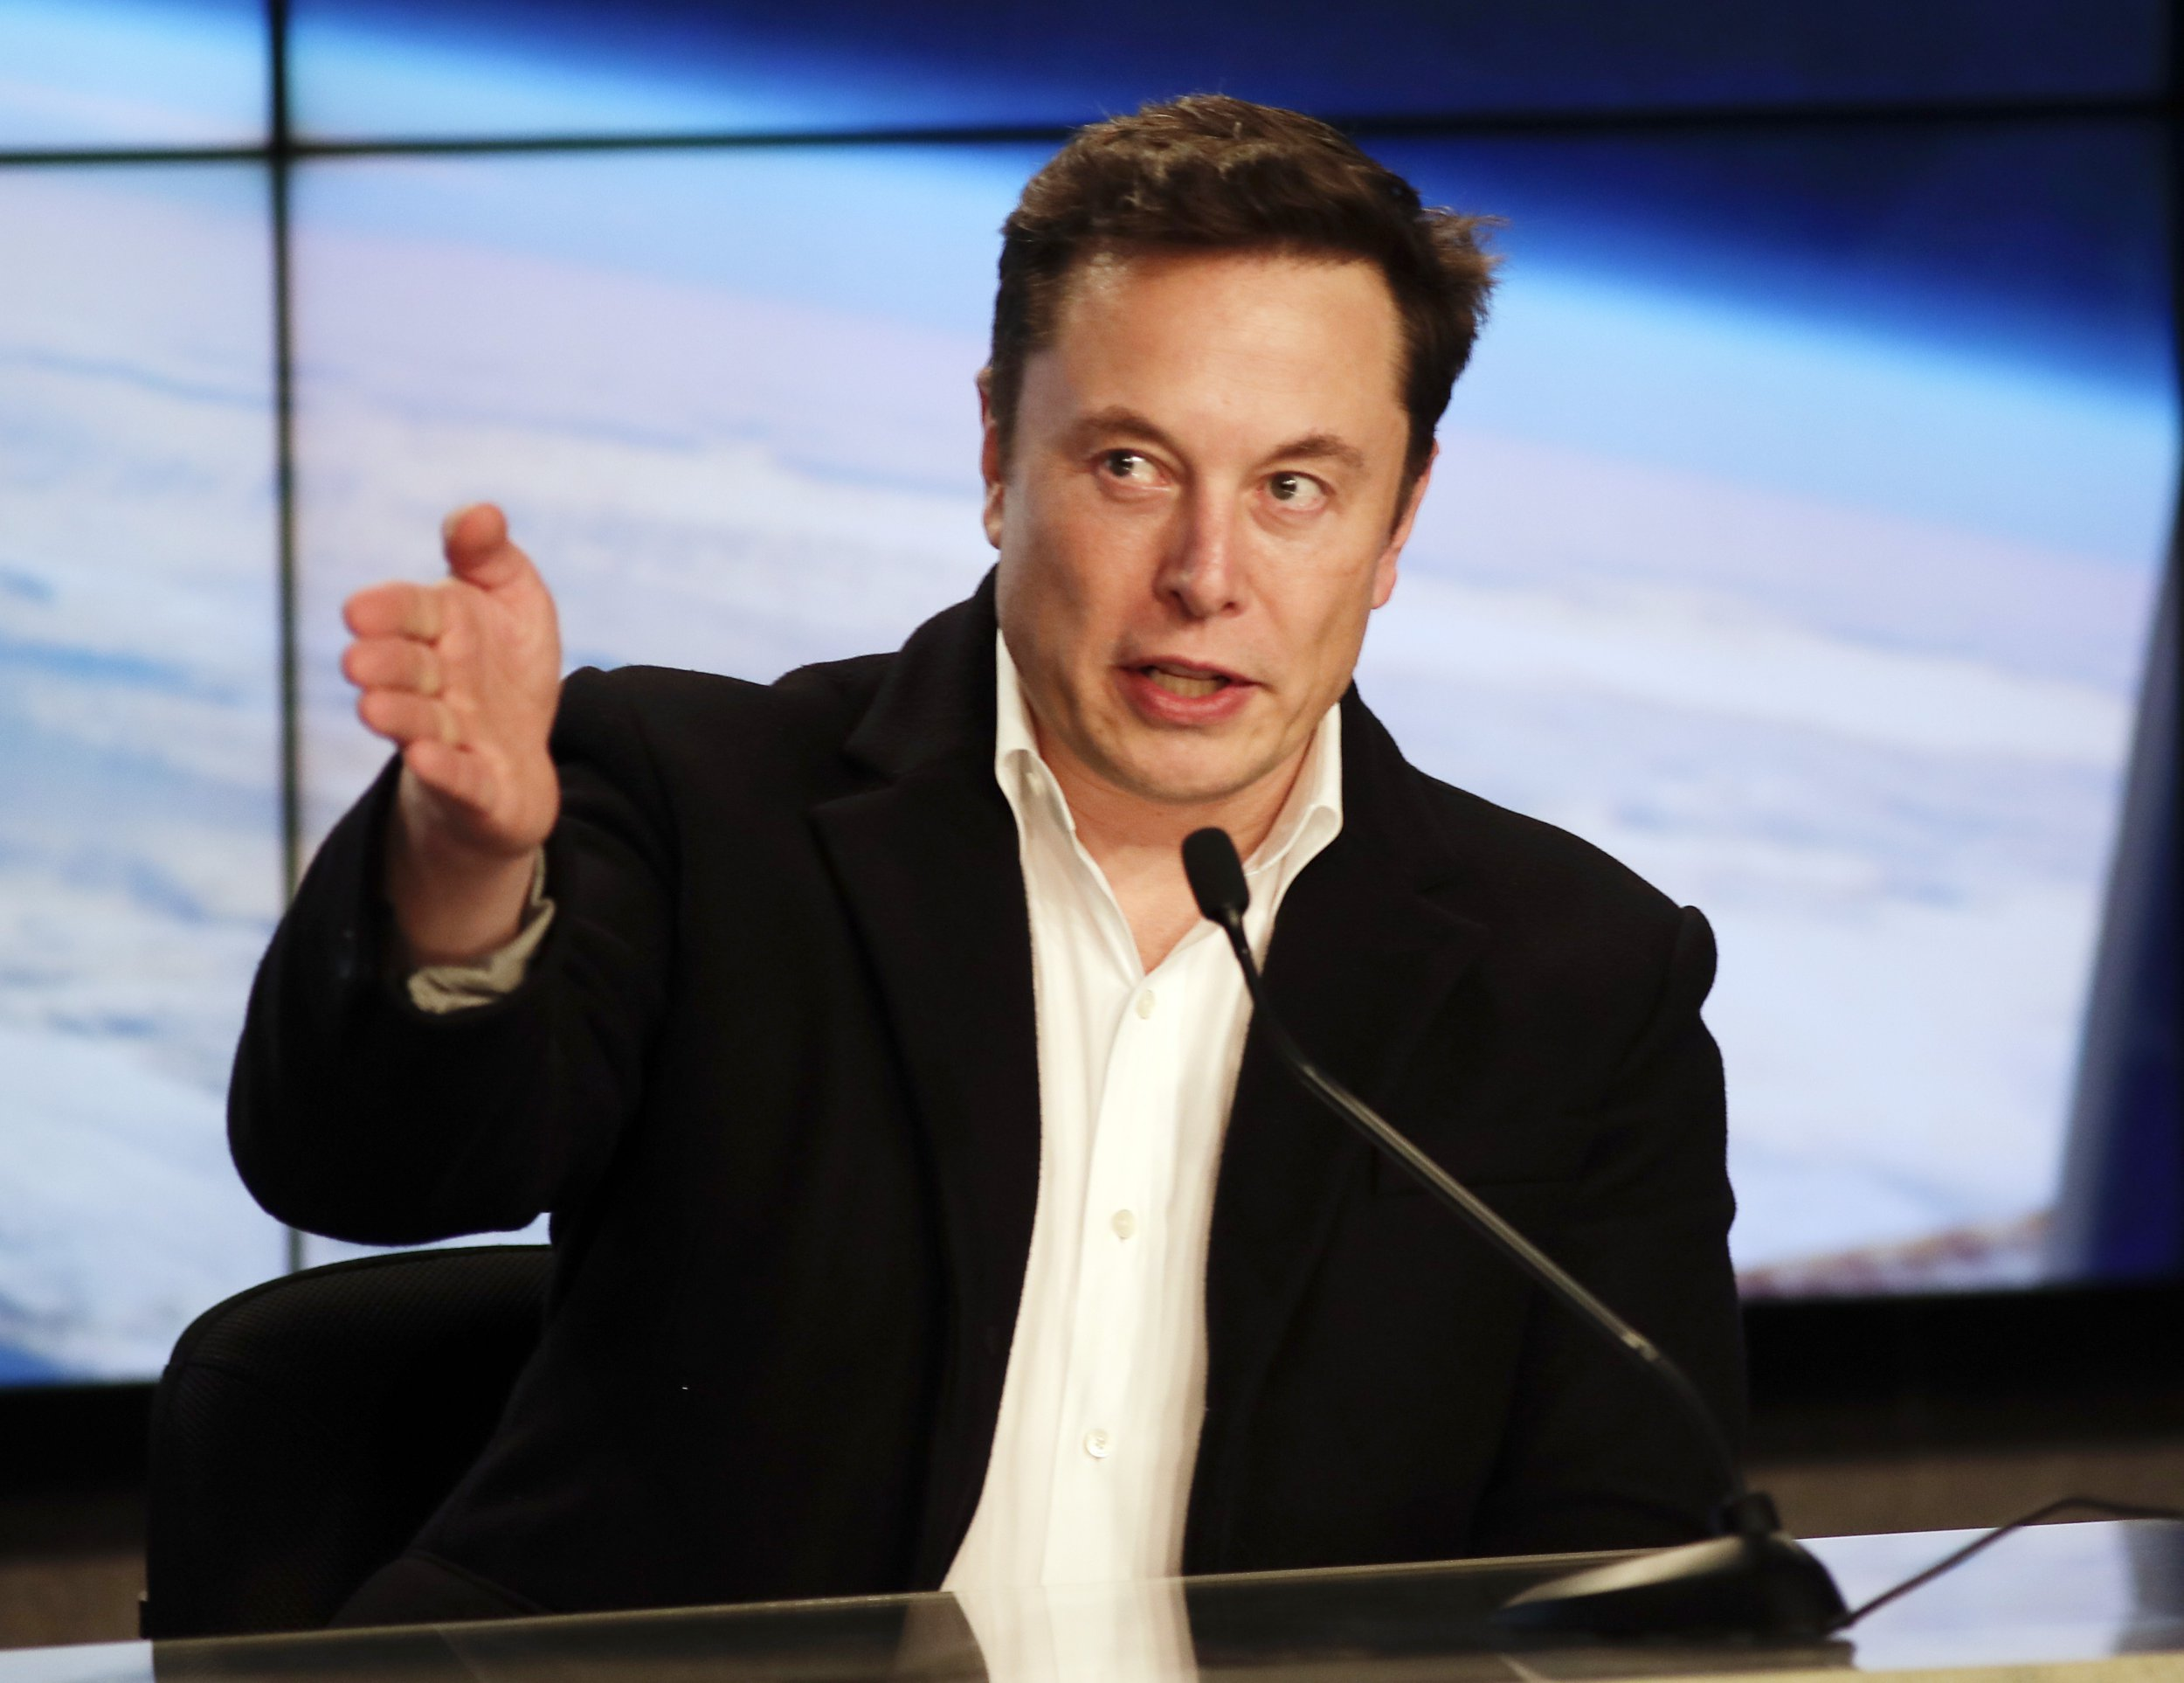 FILE - In this Mar 2, 2019 record photo, Elon Musk, CEO of SpaceX, speaks during a news discussion after a SpaceX Falcon 9 Demo-1 launch during a Kennedy Space Center in Cape Canaveral, Fla. Tesla skeleton to cut a house of directors from 11 to 7 in a pierce a automobile builder says will concede a house to act some-more nimbly and efficiently. Tesla says a 4 directors who will skip aren't withdrawal since of any feud with a company. Tesla disclosed a changes in regulatory filings Friday, Apr 19, 2019. (AP Photo/John Raoux)